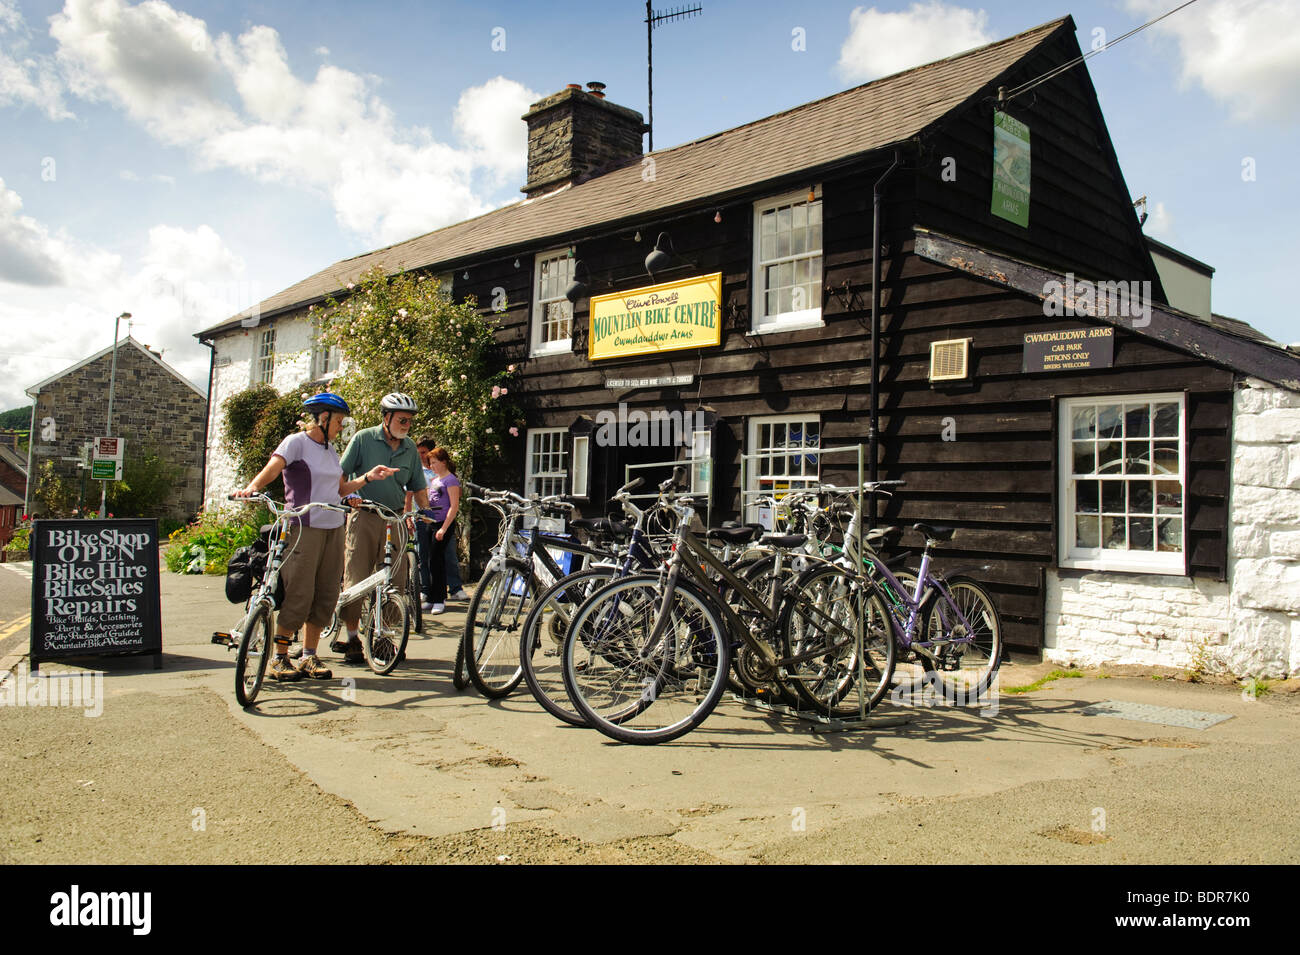 Mount Bike Shop Tourists On Their Bicycles Outside The Clive Powell Mountain Bike